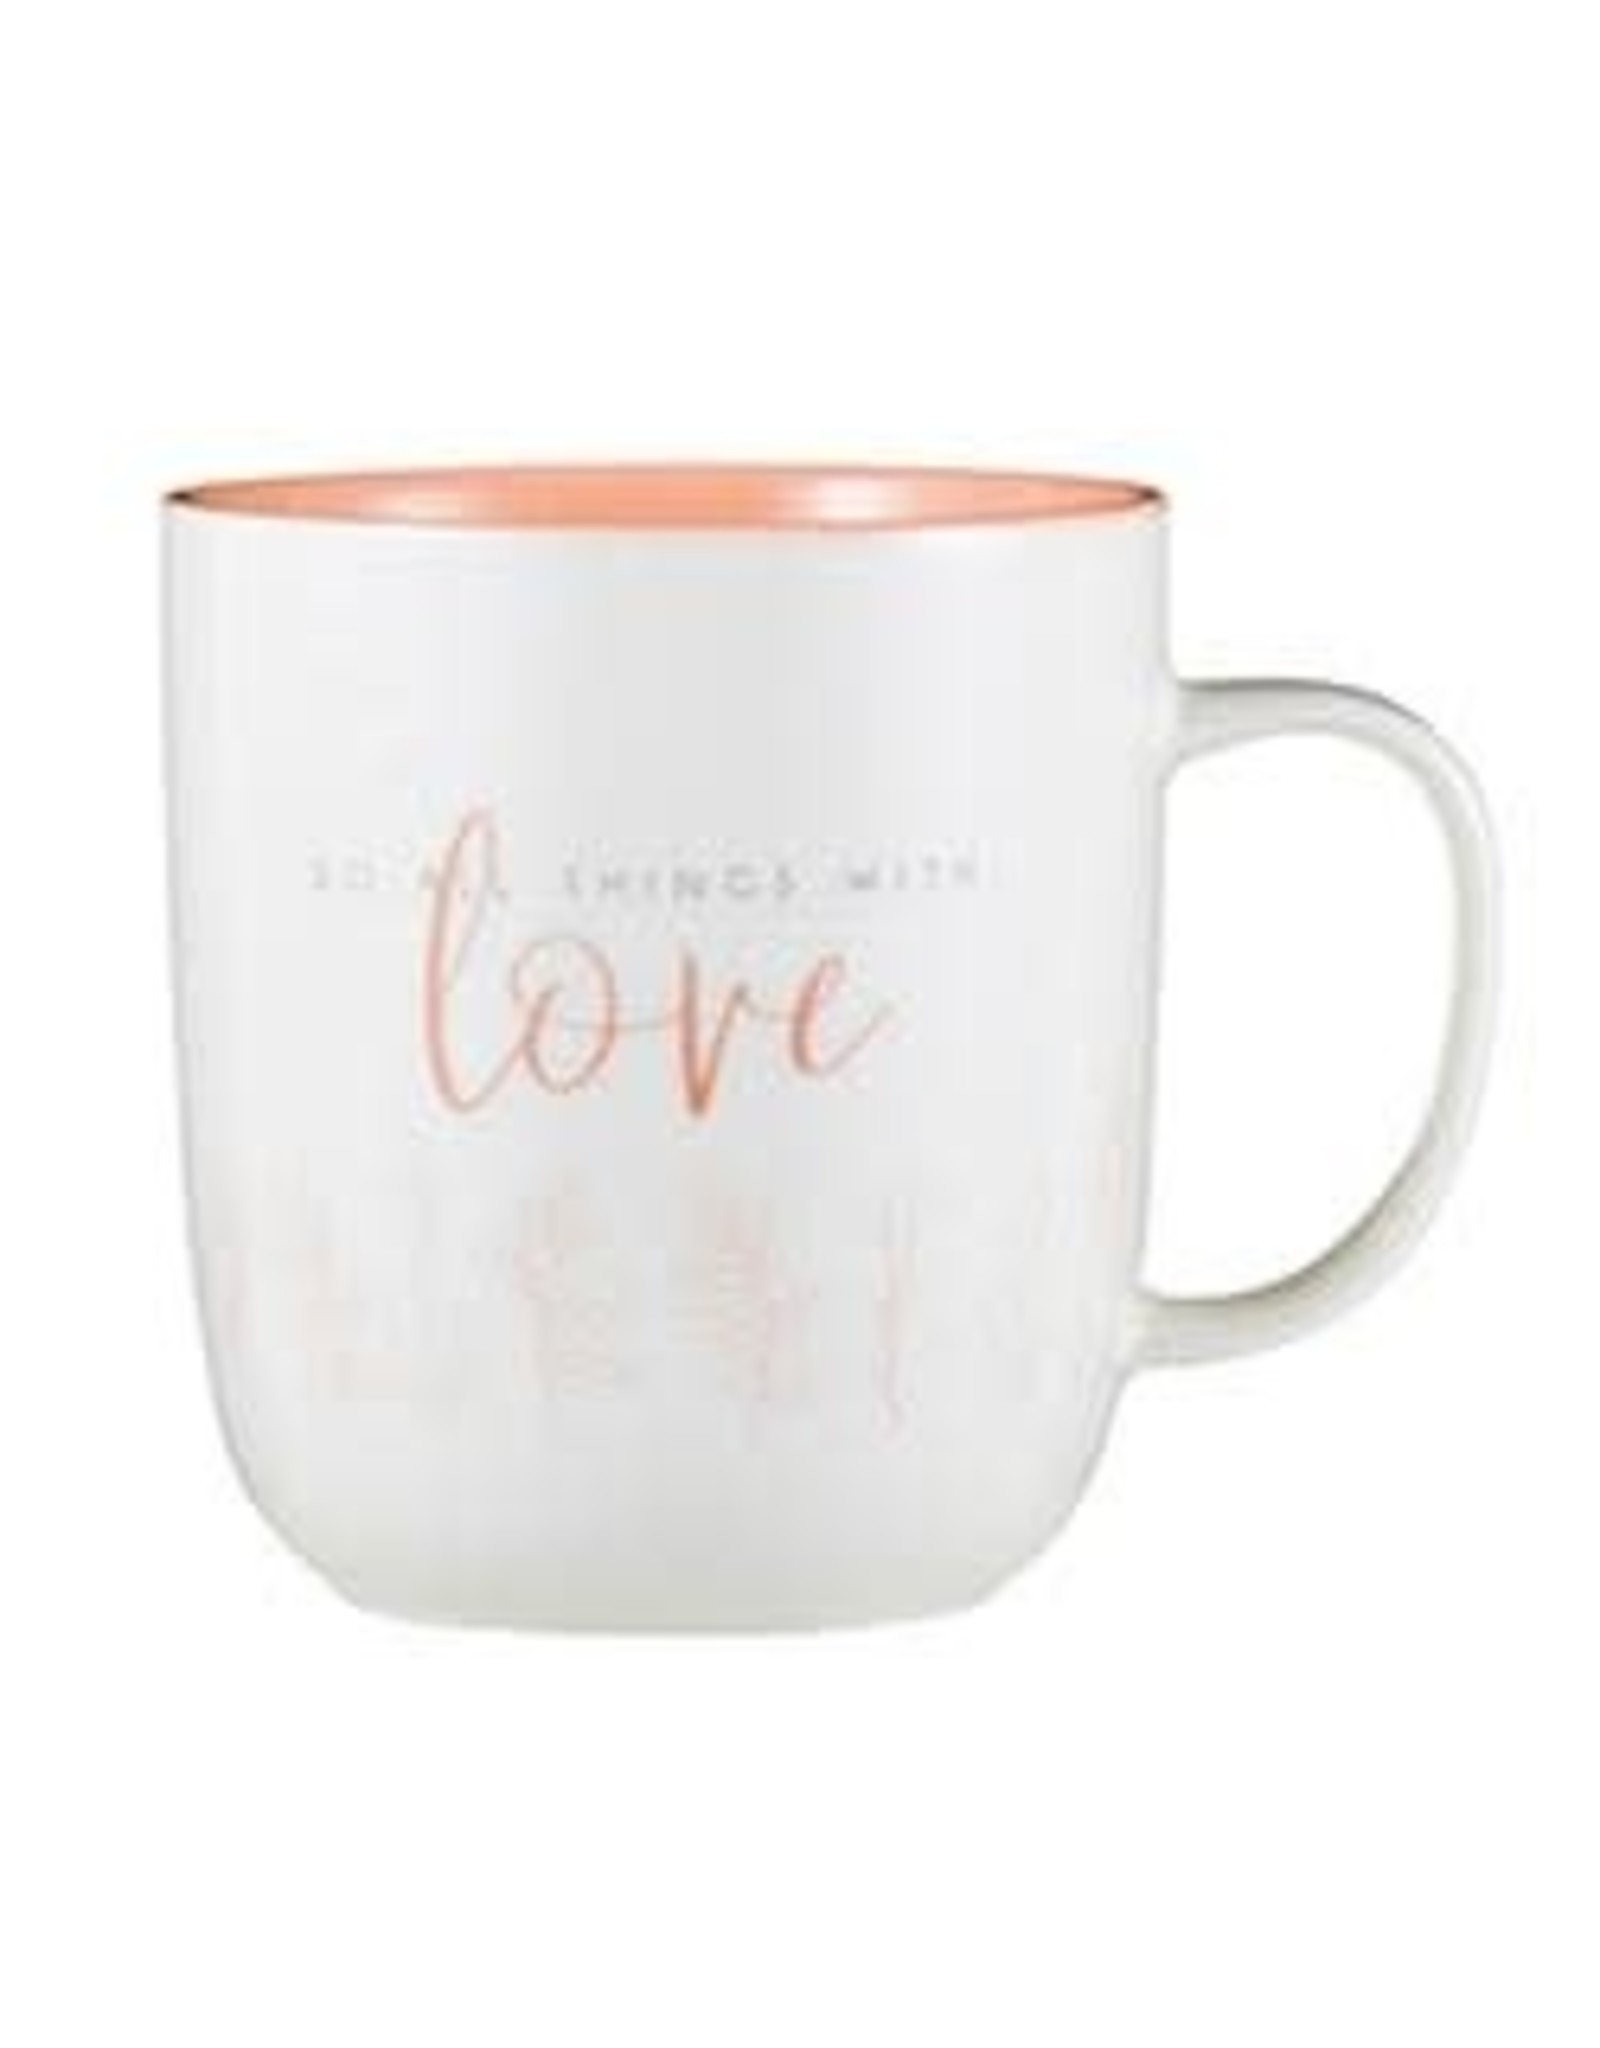 Christian Brands All Things with Love Mug